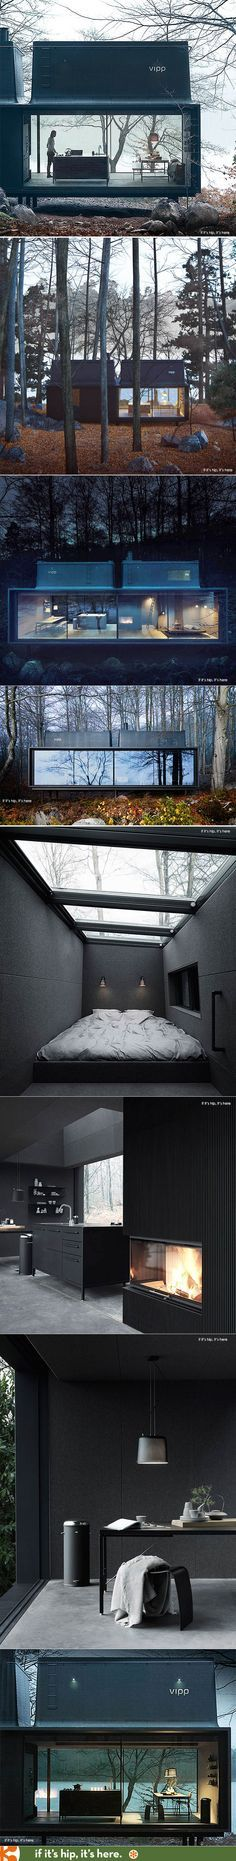 The Vipp Shelter is a prefab structure loaded with Vipp products. | http://www.ifitshipitshere.com/the-vipp-shelter/